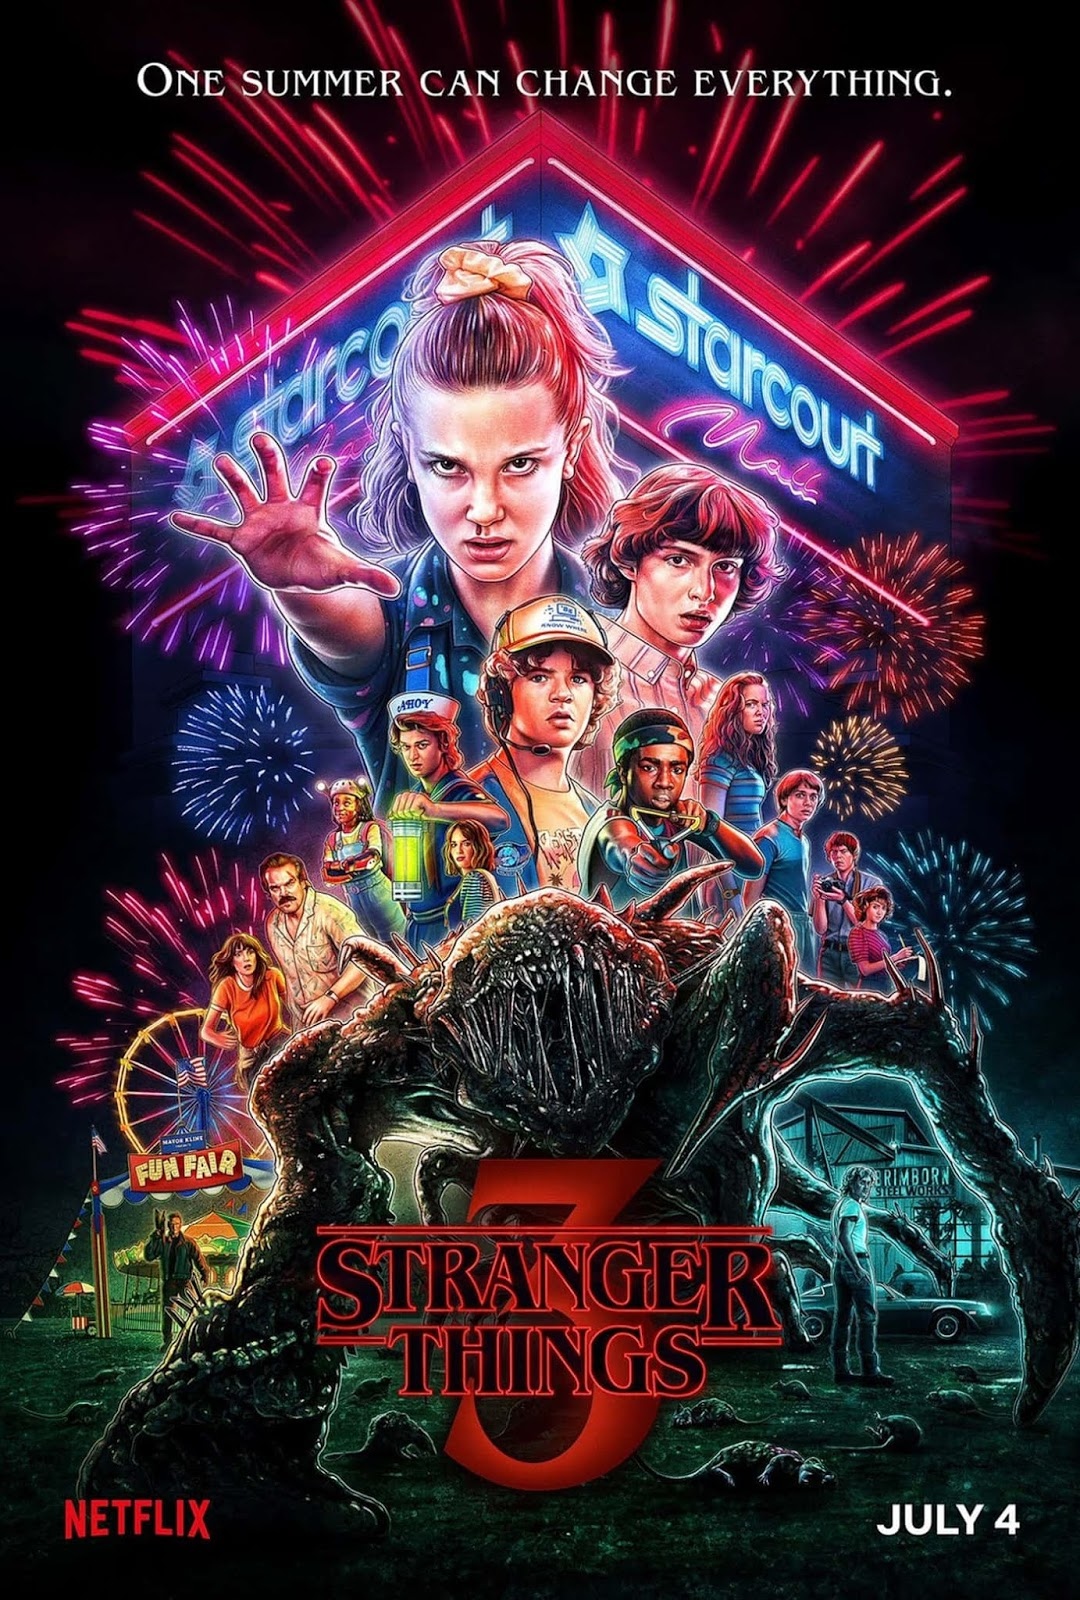 póster-oficial-temporada-3-stranger-things